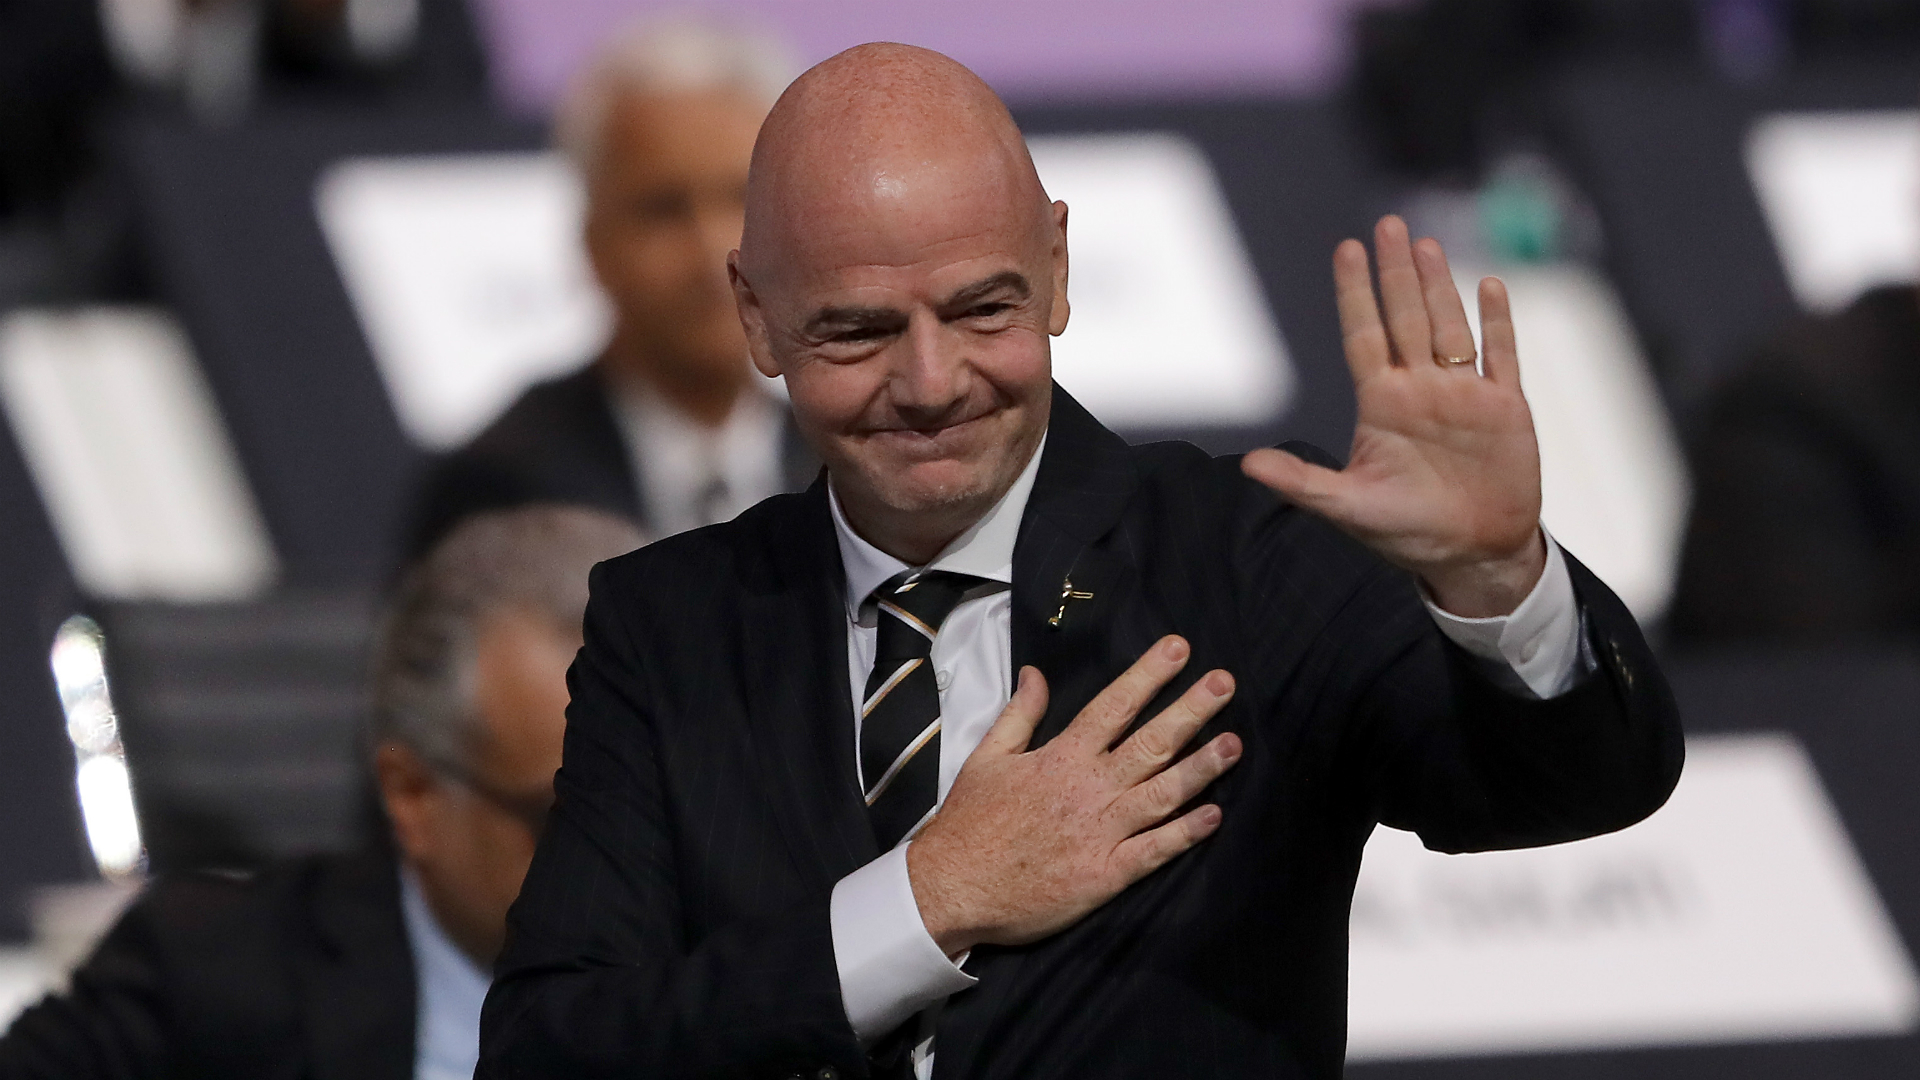 Infantino re-elected as FIFA president for second term